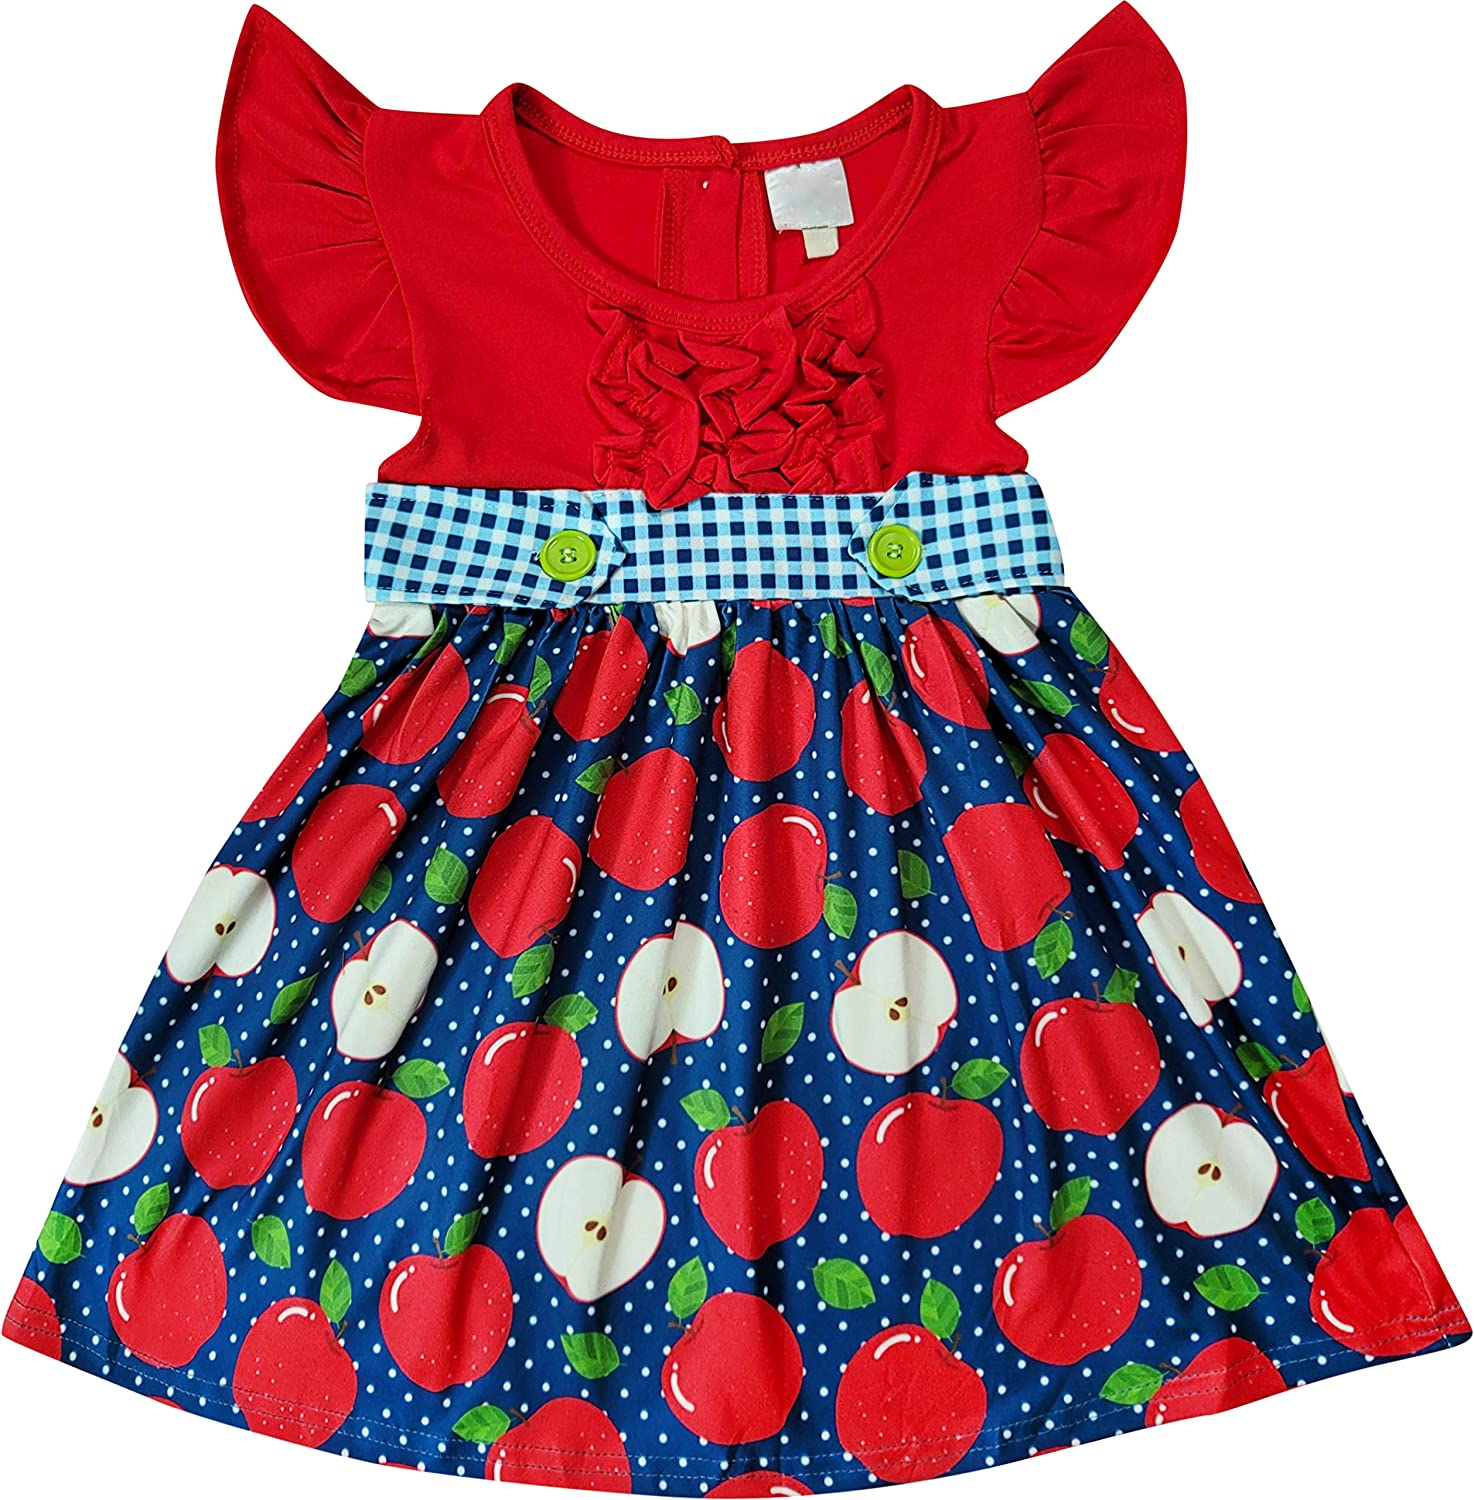 Toddler Little Girls Back to School Dress - Boutique Quality & Styles Apple, Pencil School Dresses